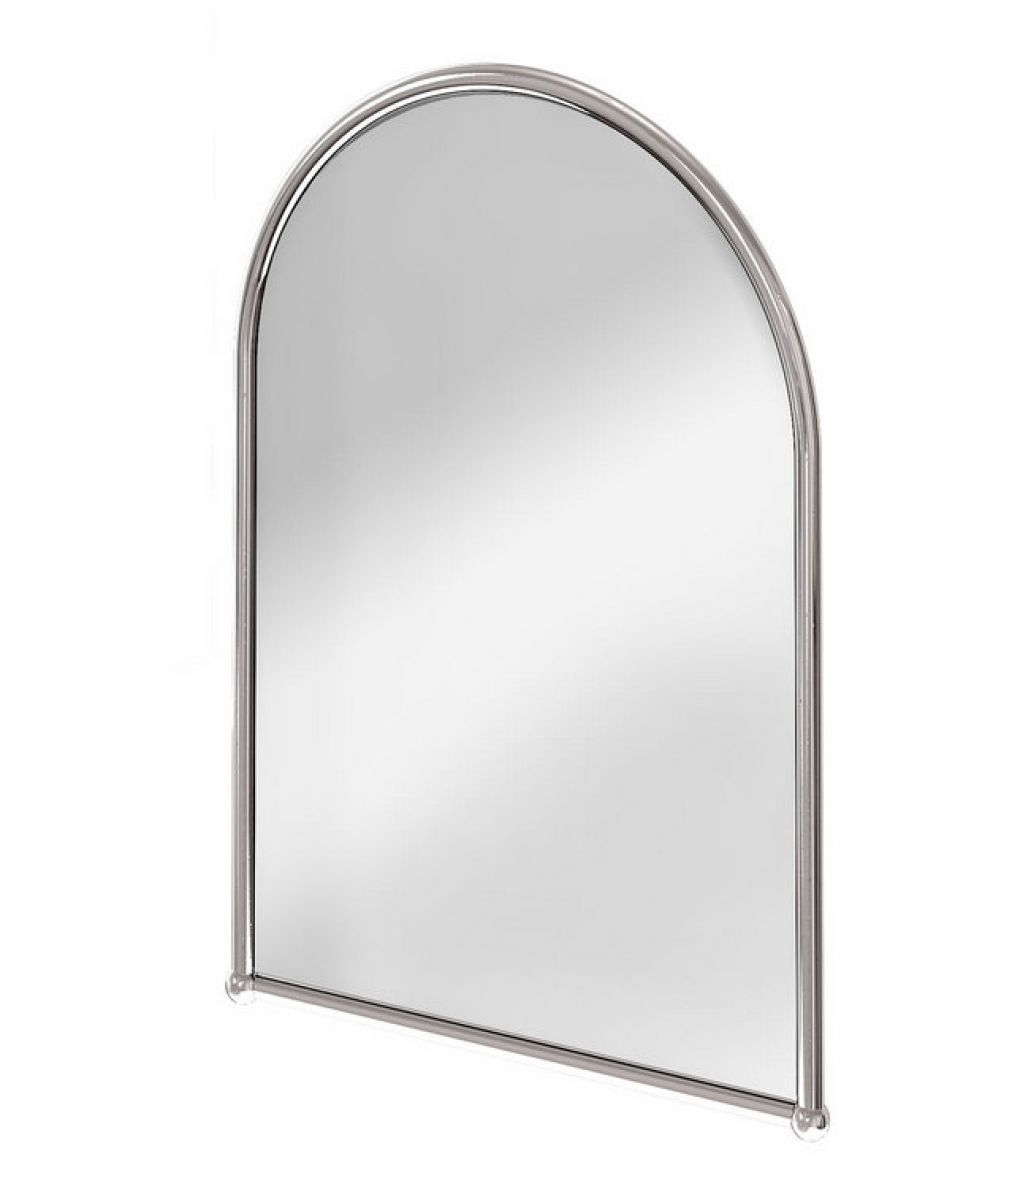 Bathroom White Arched Bathroom Mirrors Pictures Decorations With Arched Mirrors Bathroom (View 7 of 15)